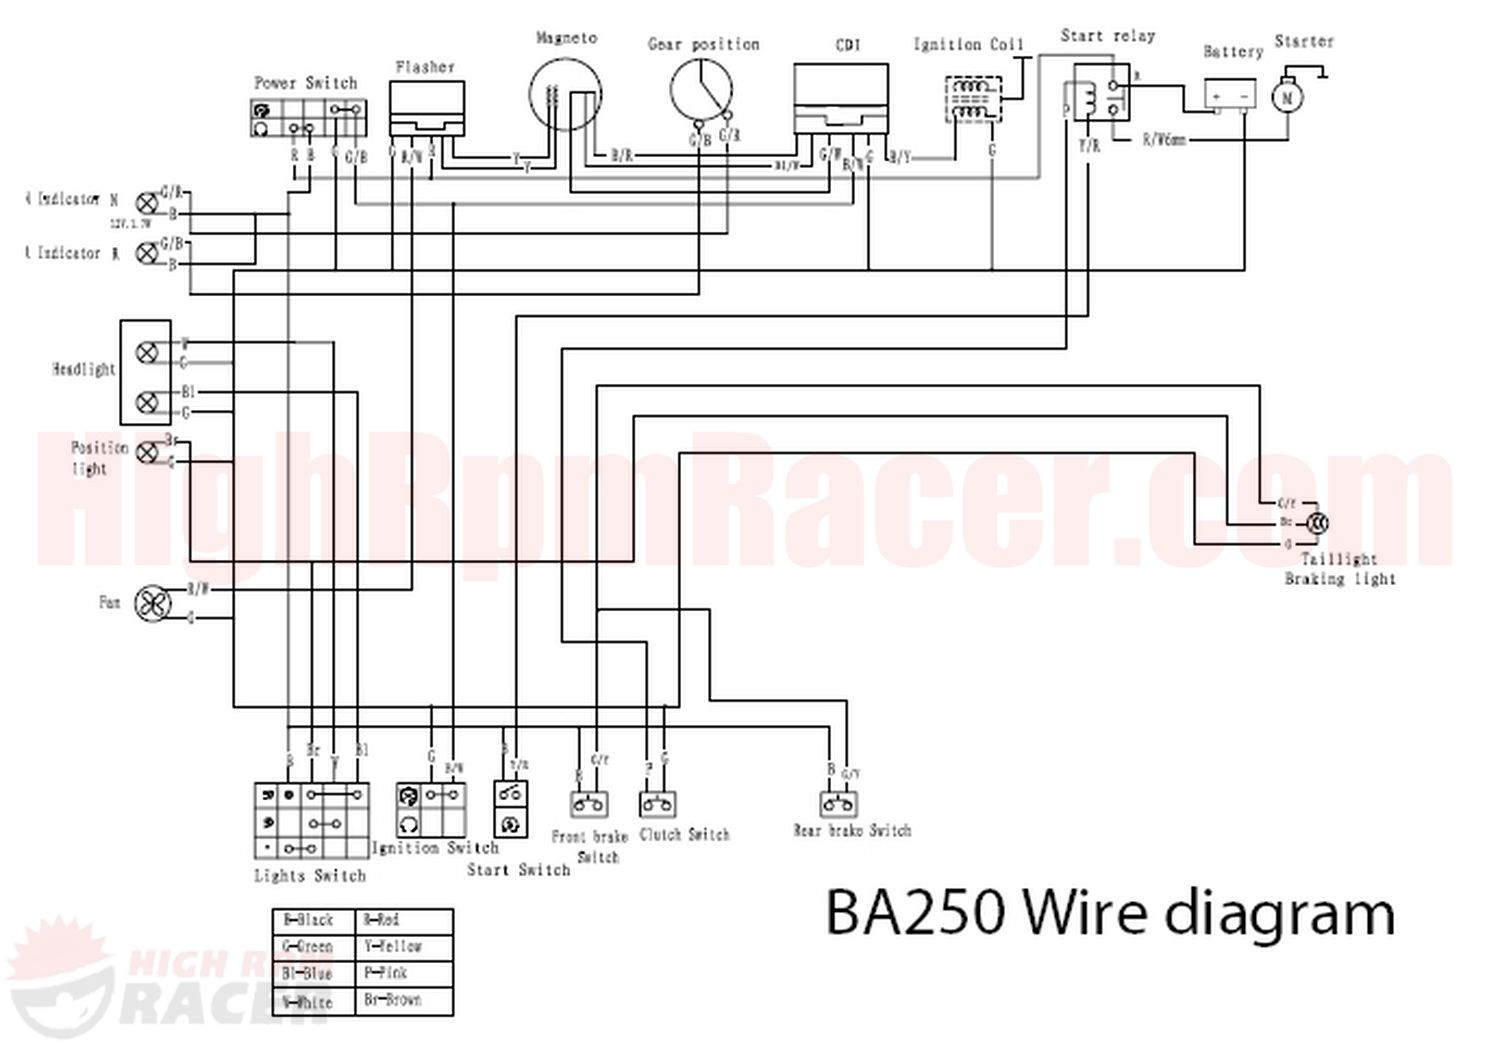 Wiring Diagram For Sunl 90